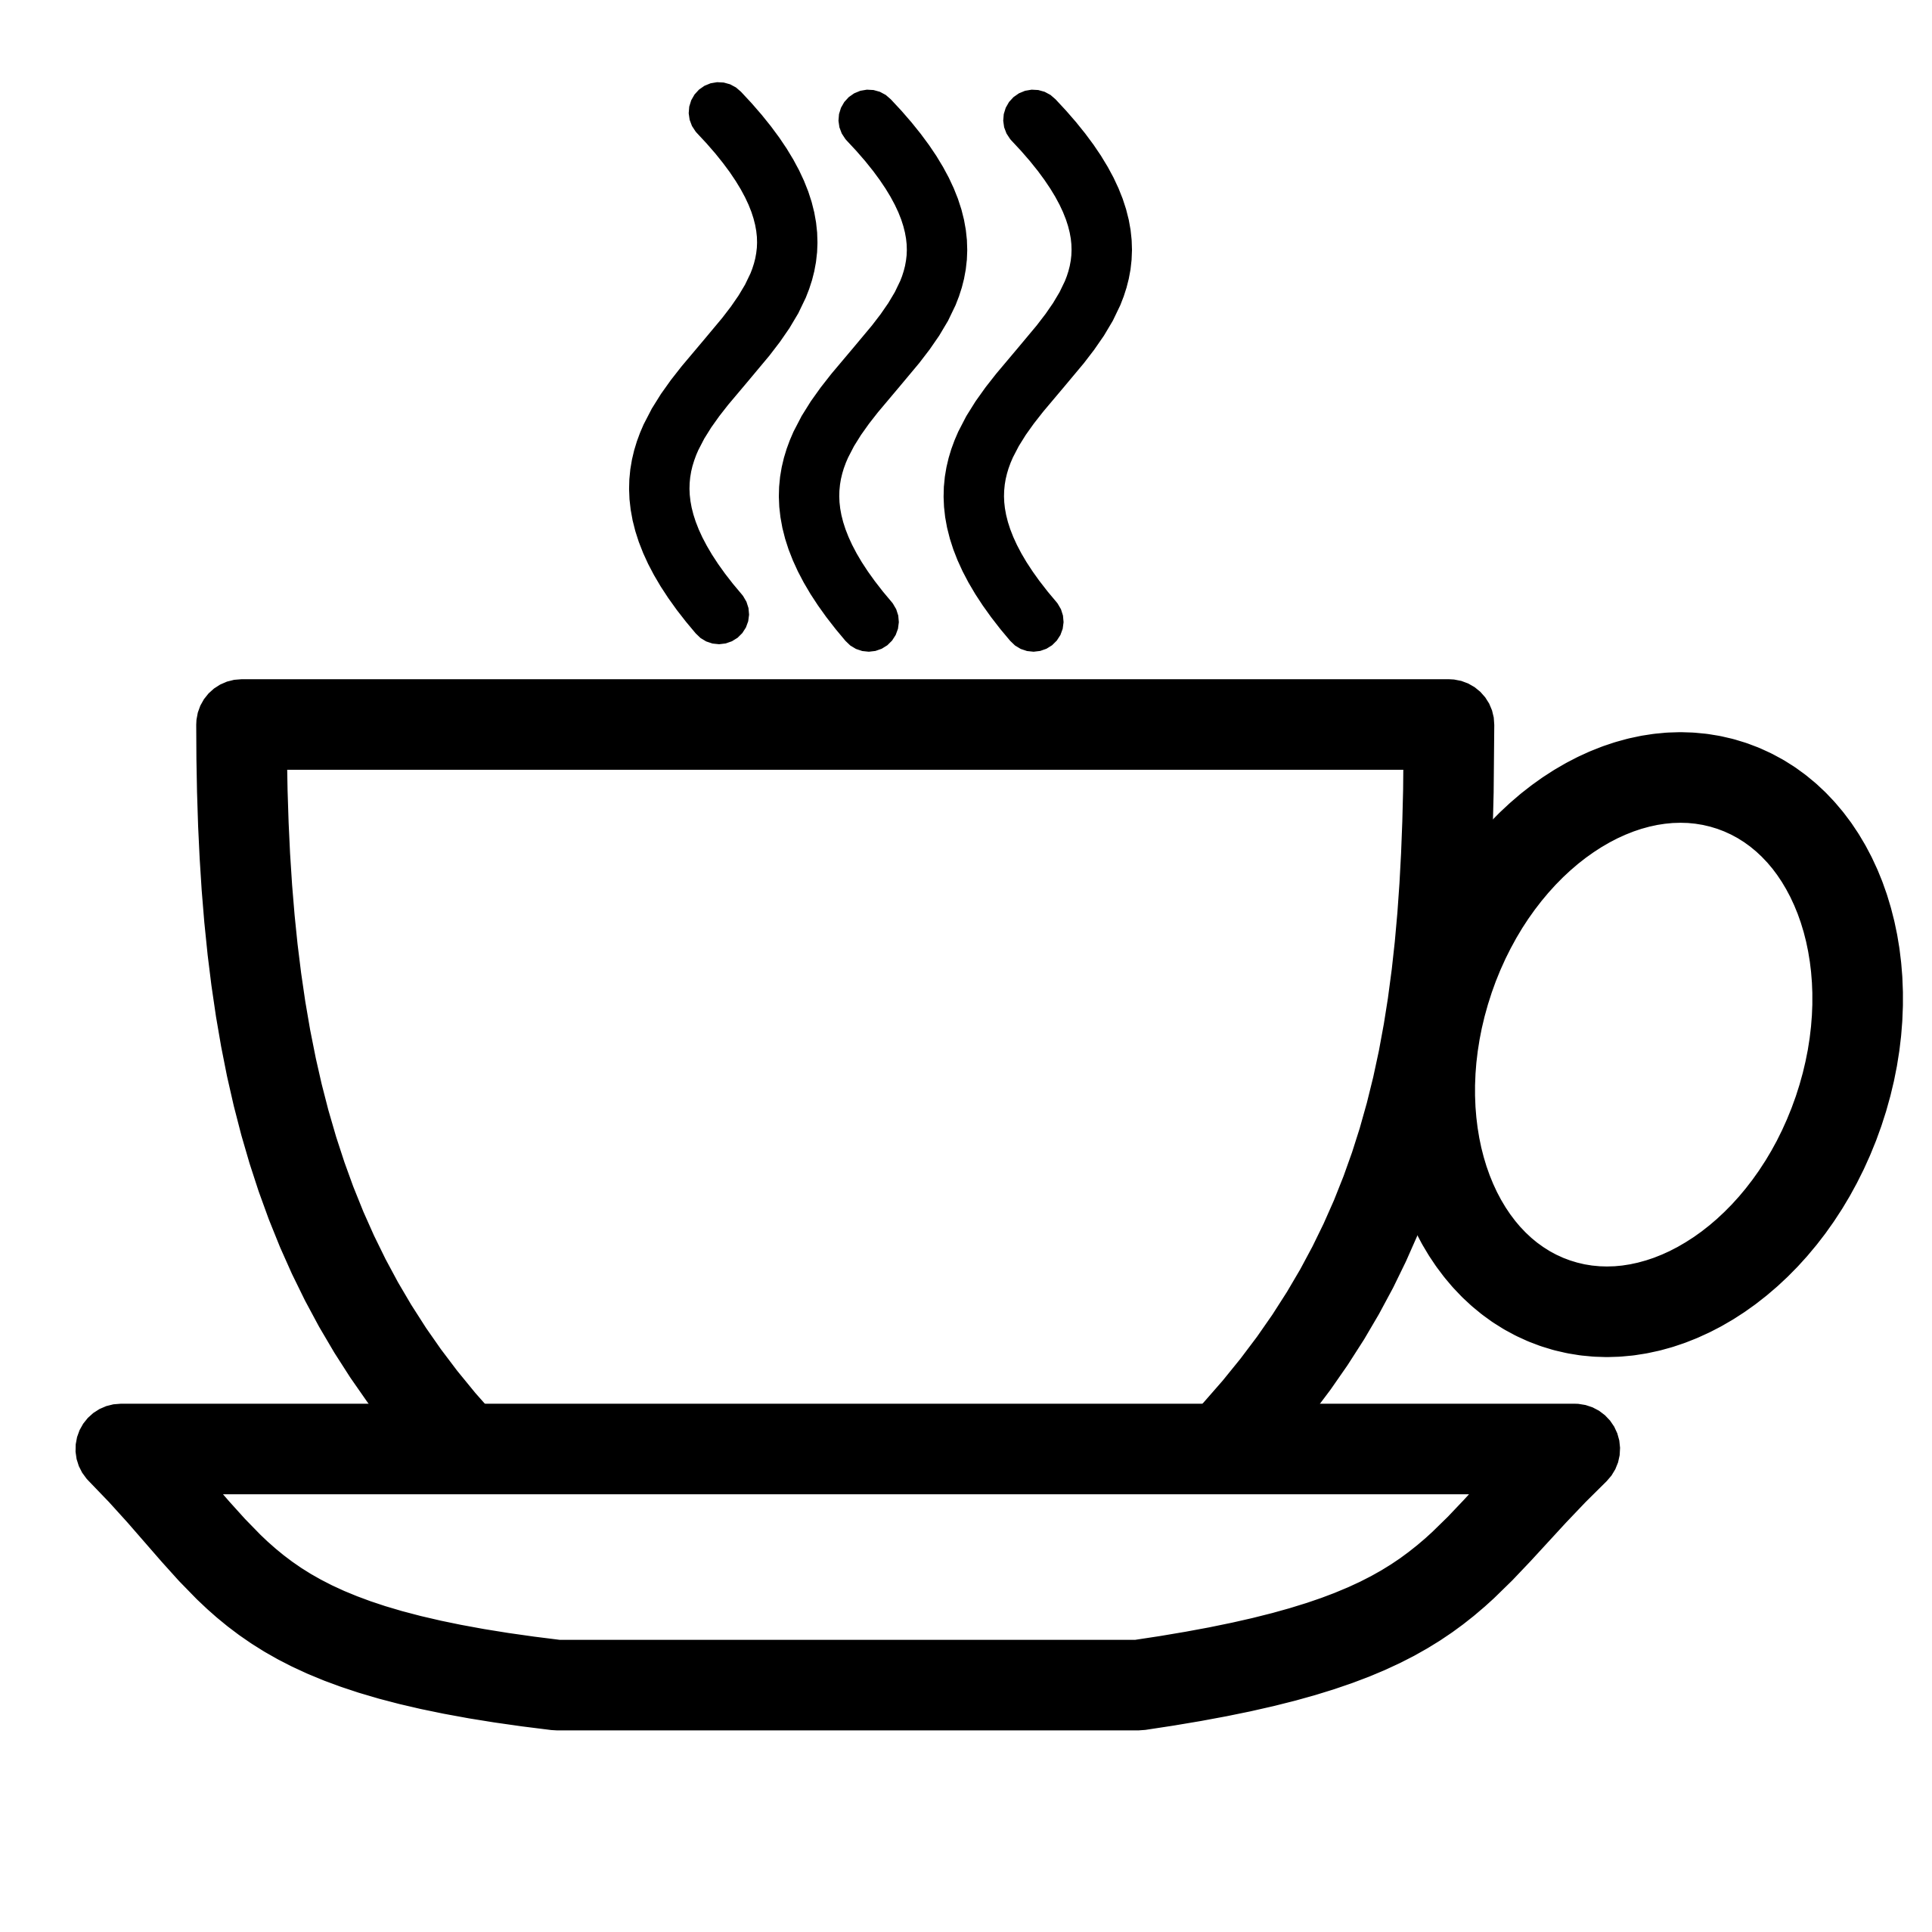 Cup svg